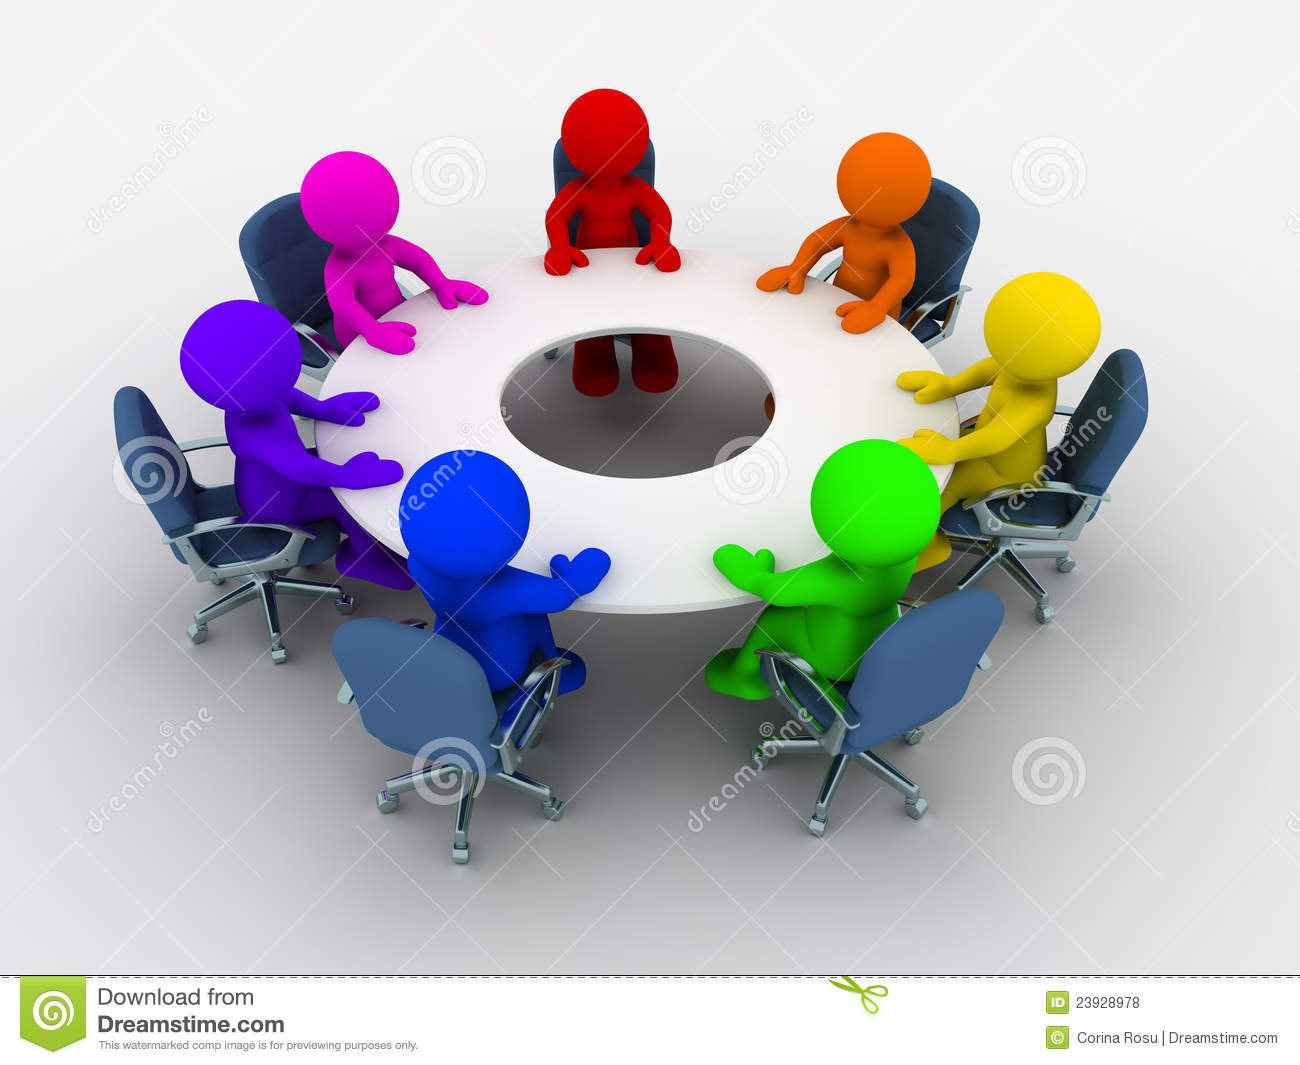 conference table royalty free stock photos image 23928978 magnifying glass clipart characters magnifying glass clip art free